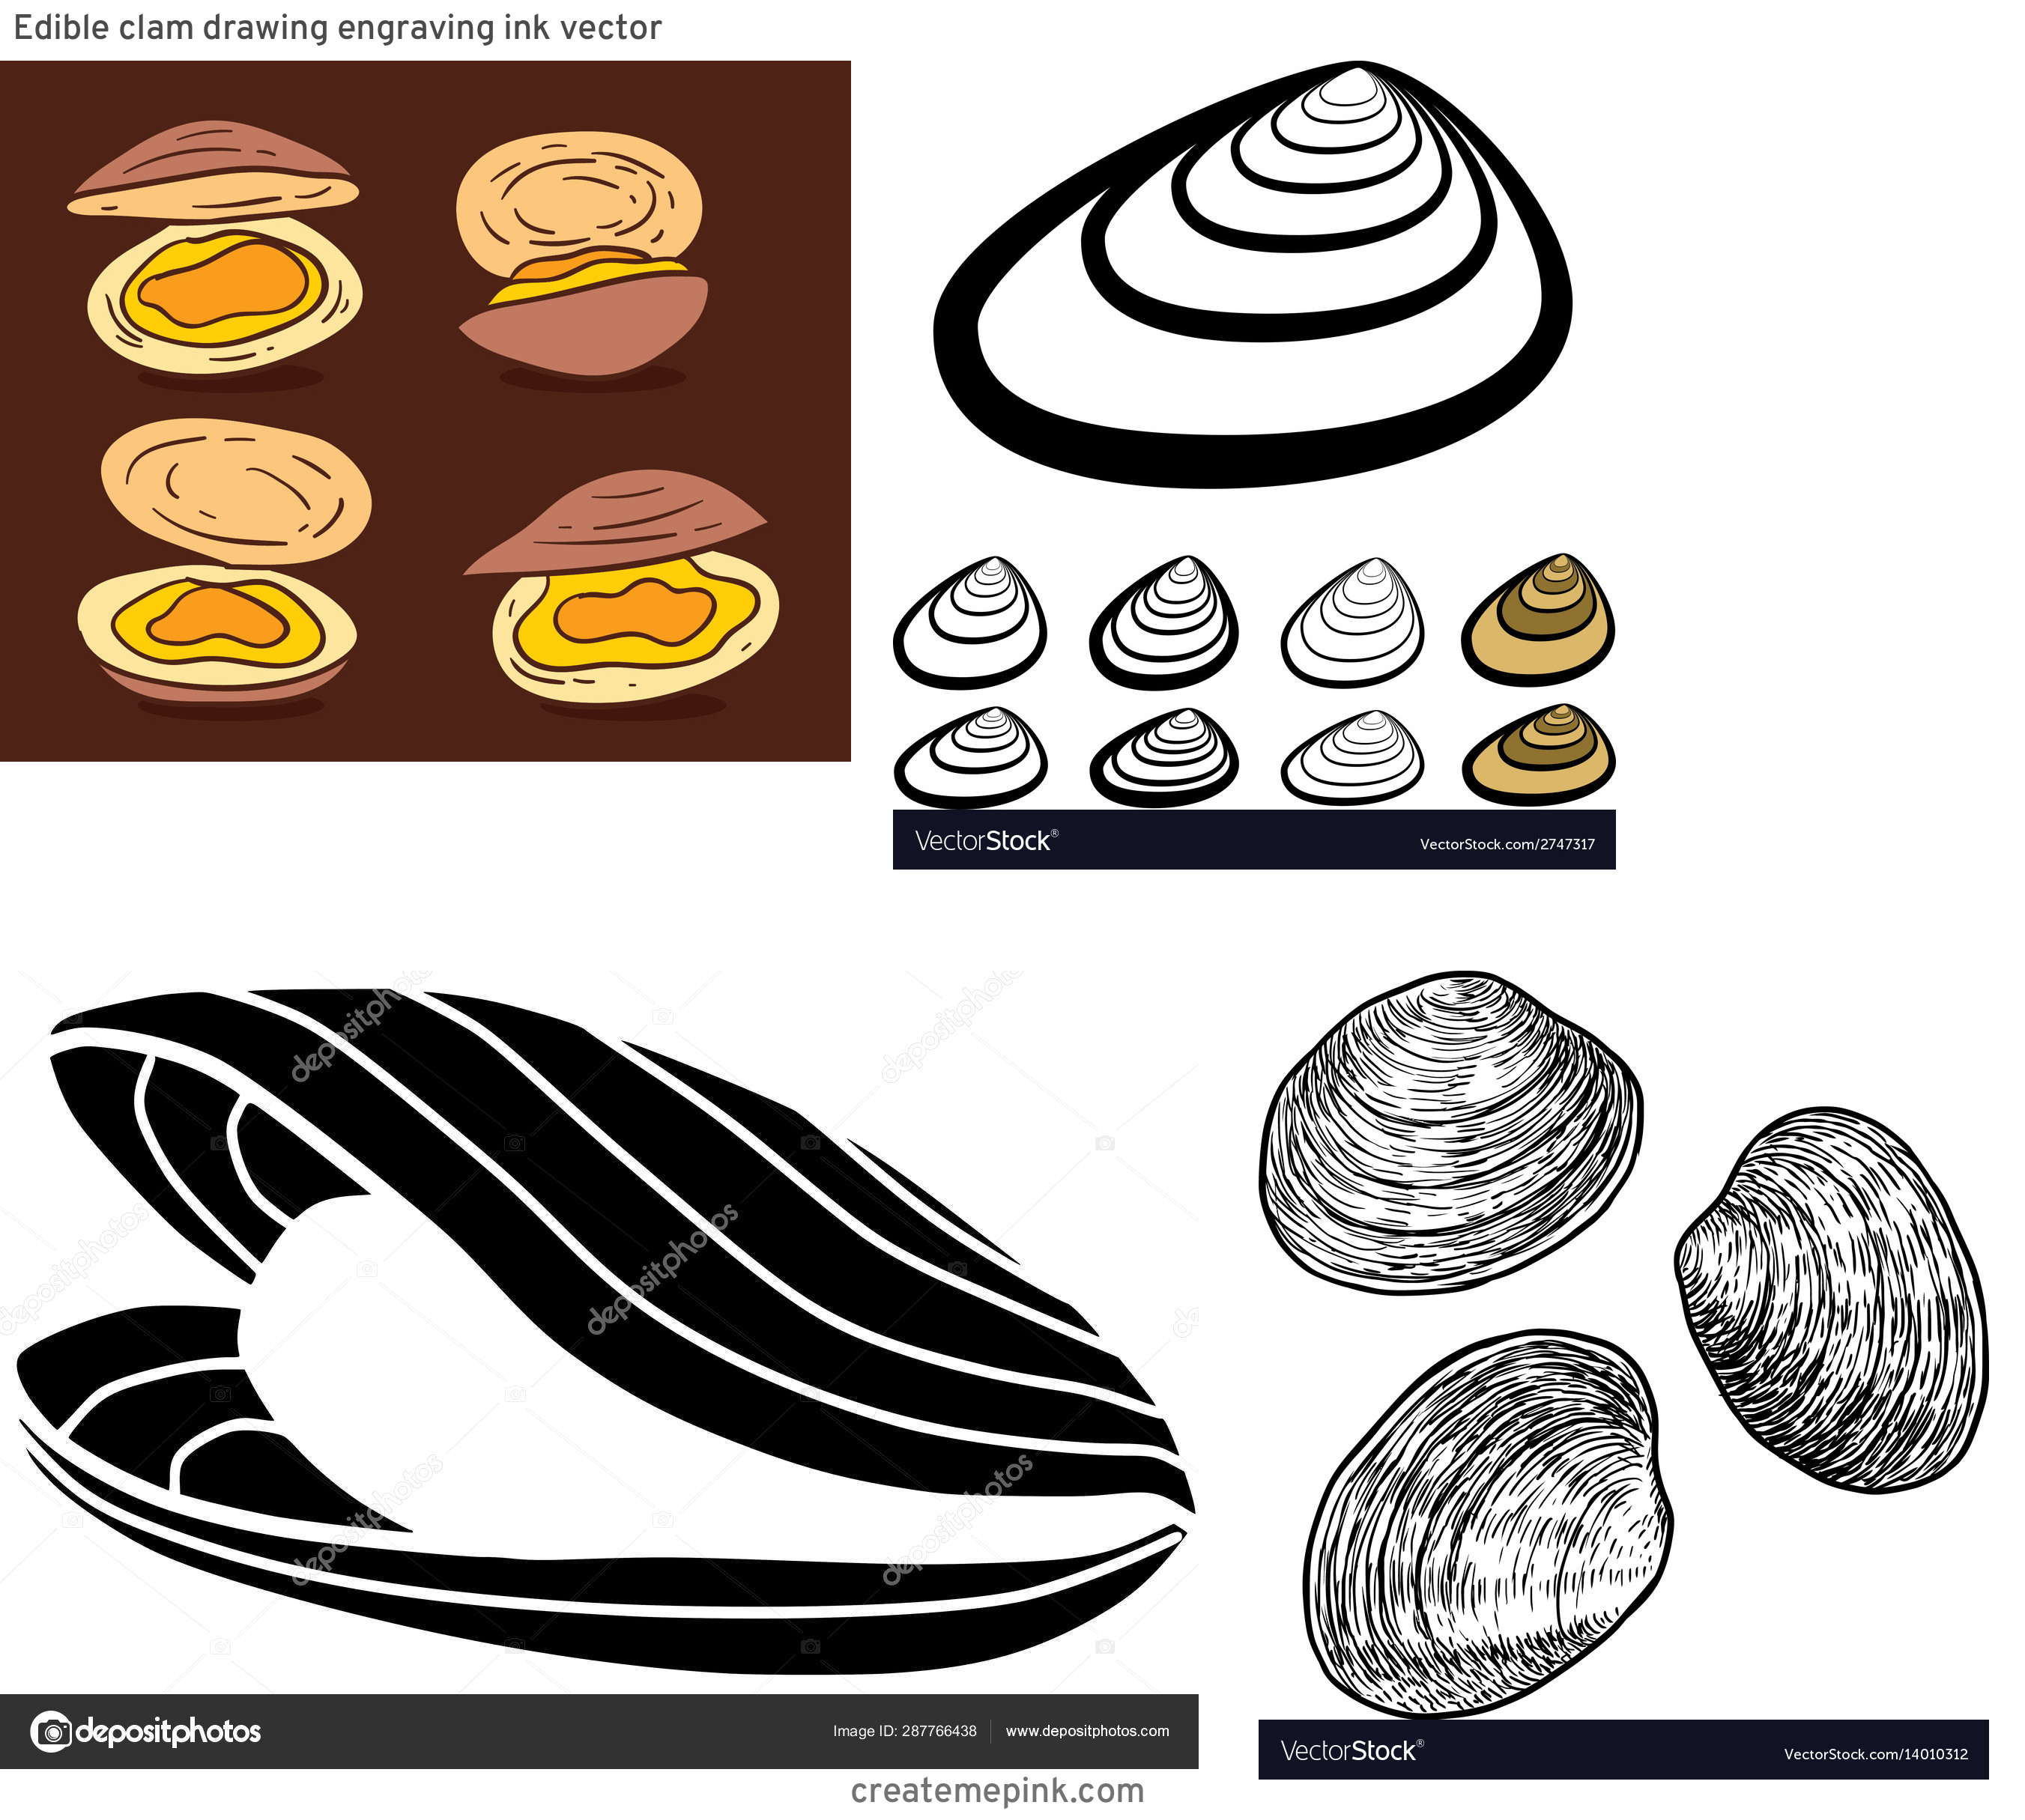 Clam Vector: Edible Clam Drawing Engraving Ink Vector